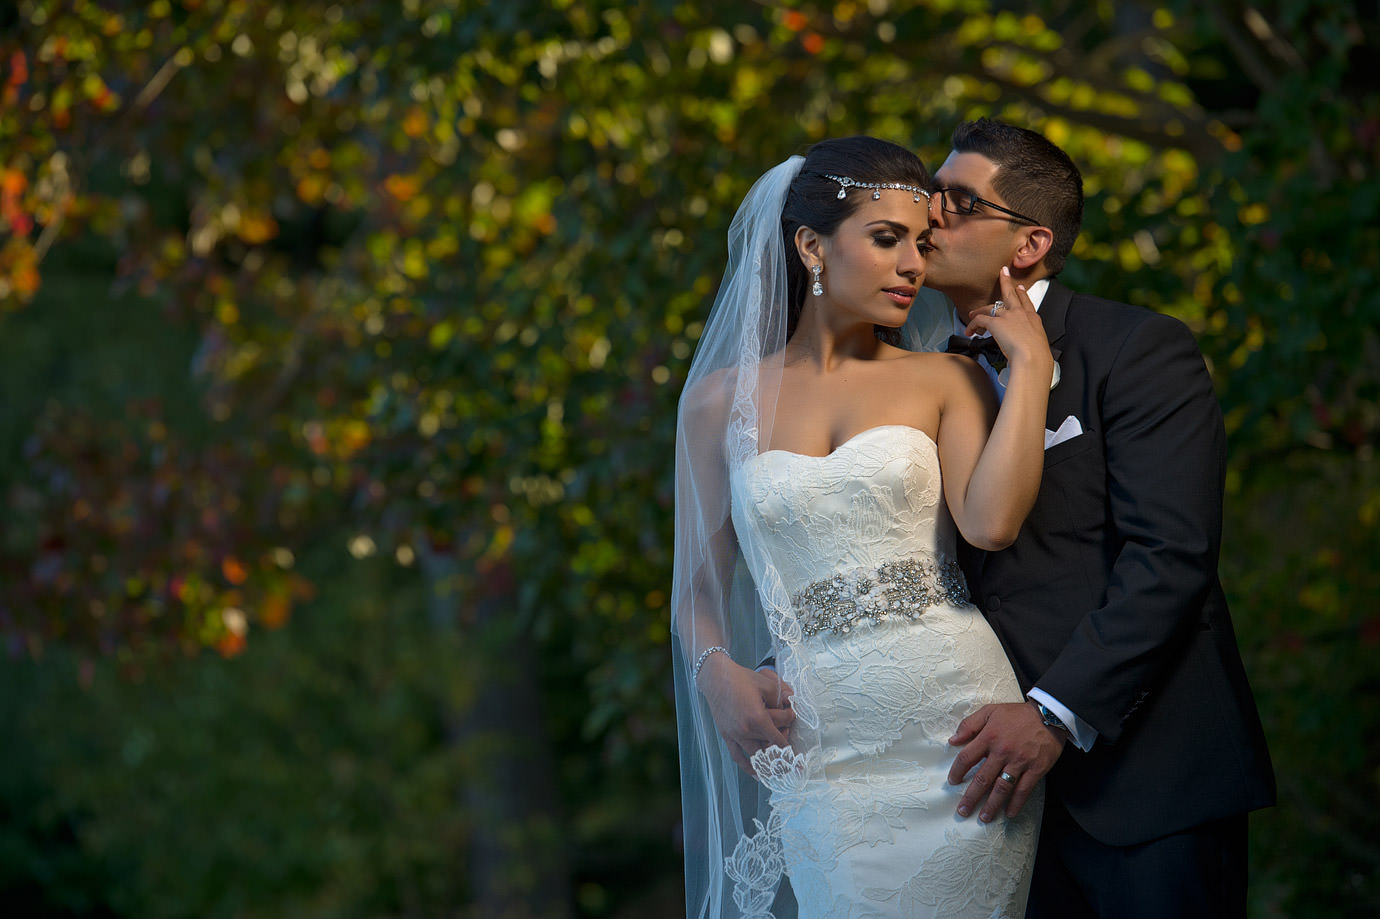 halifax wedding photographers, Lebanese weddings halifax, jeff cooke, jenn nauss